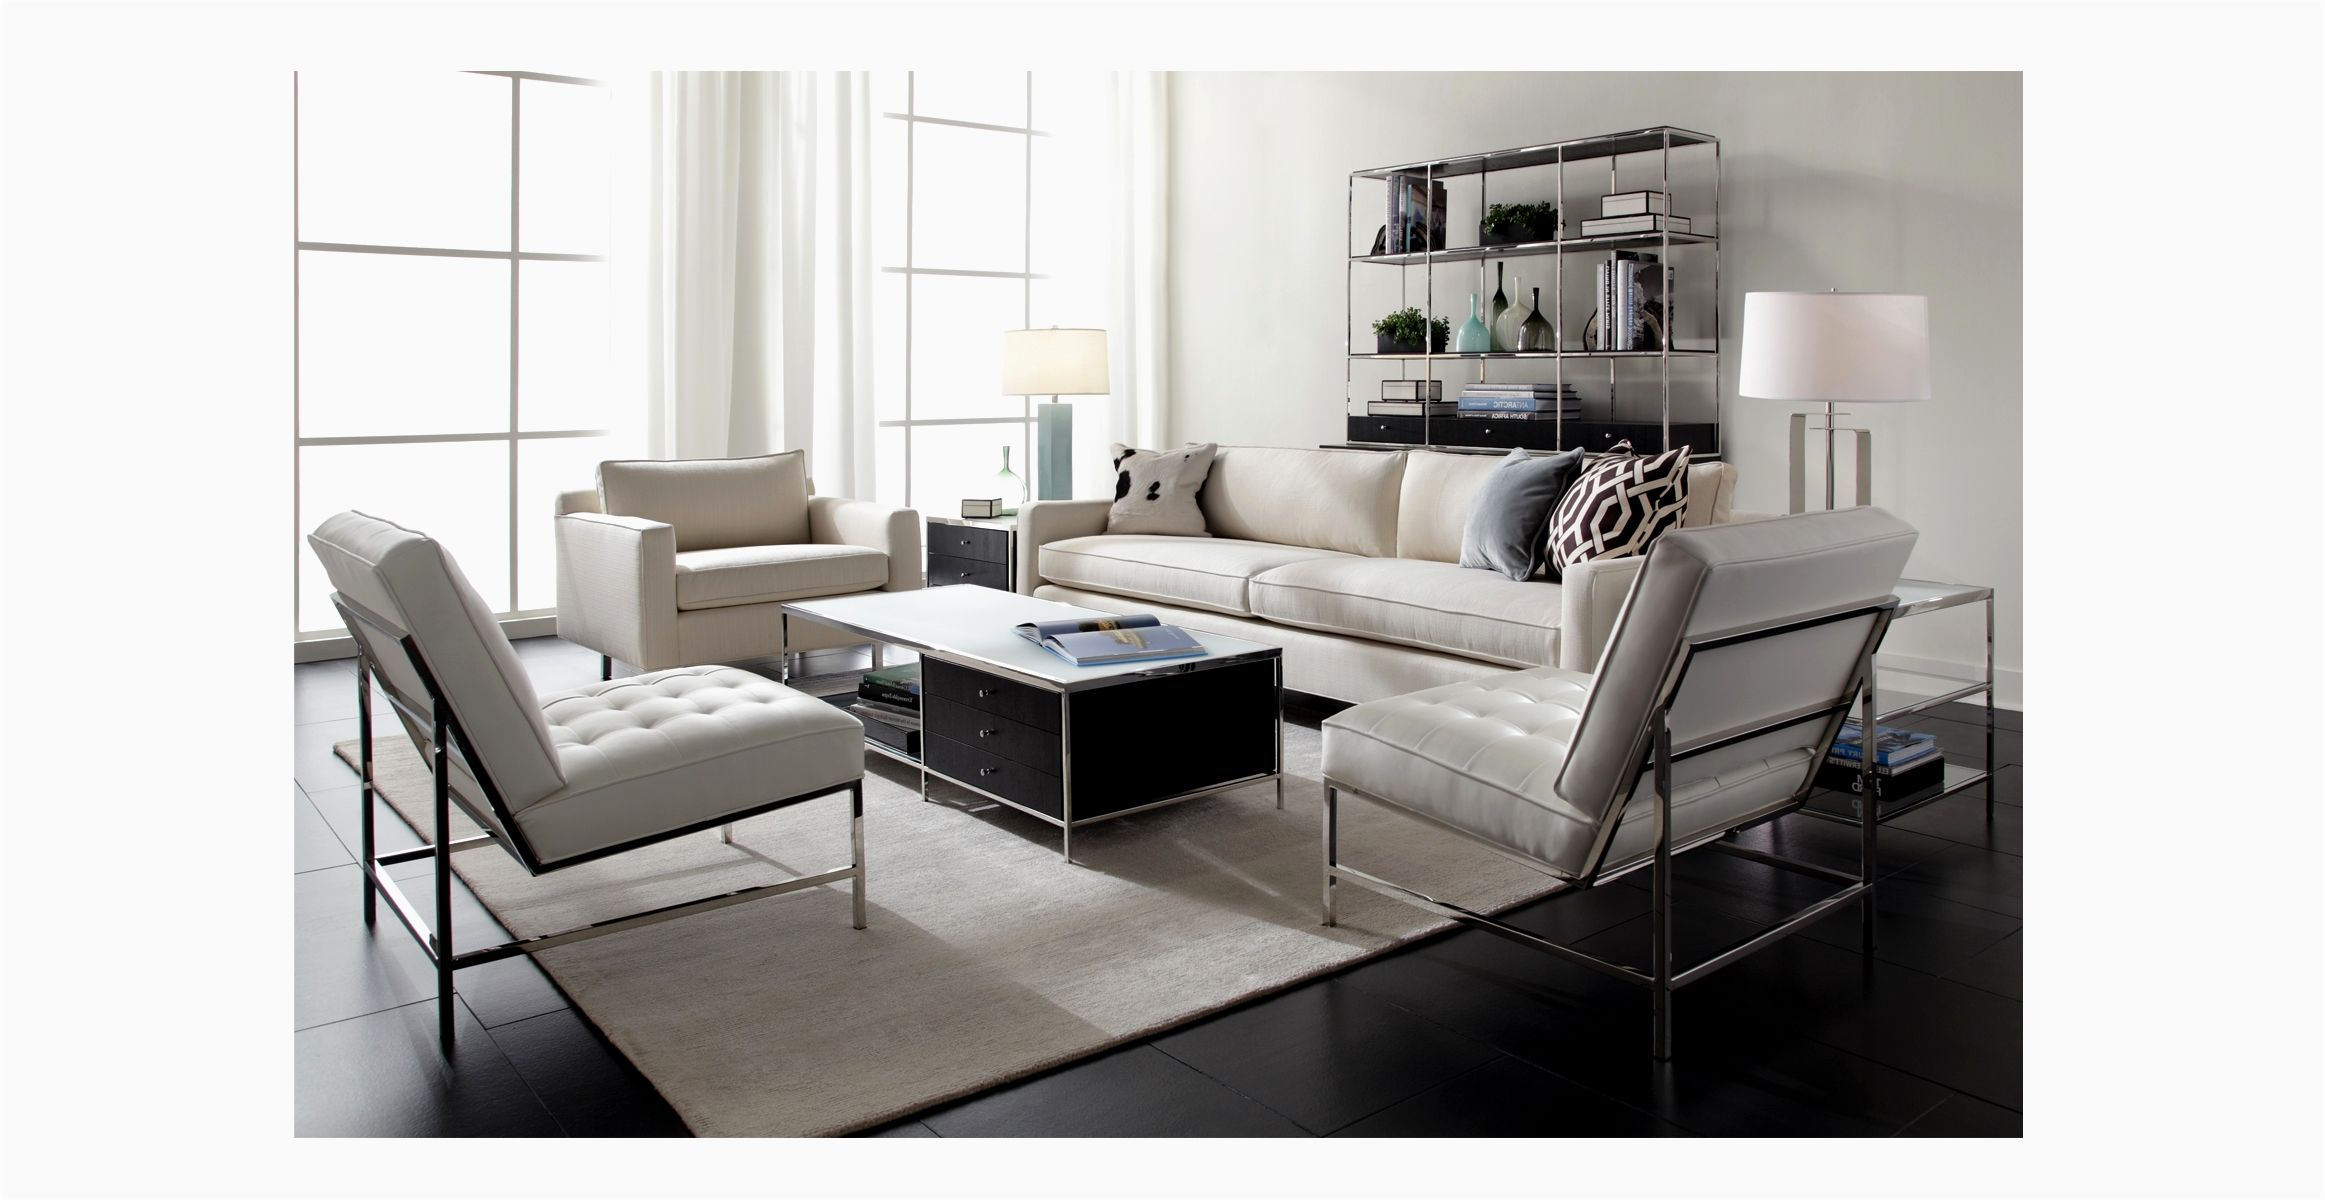 lovely sectional sofas houston photograph-Fresh Sectional sofas Houston Concept